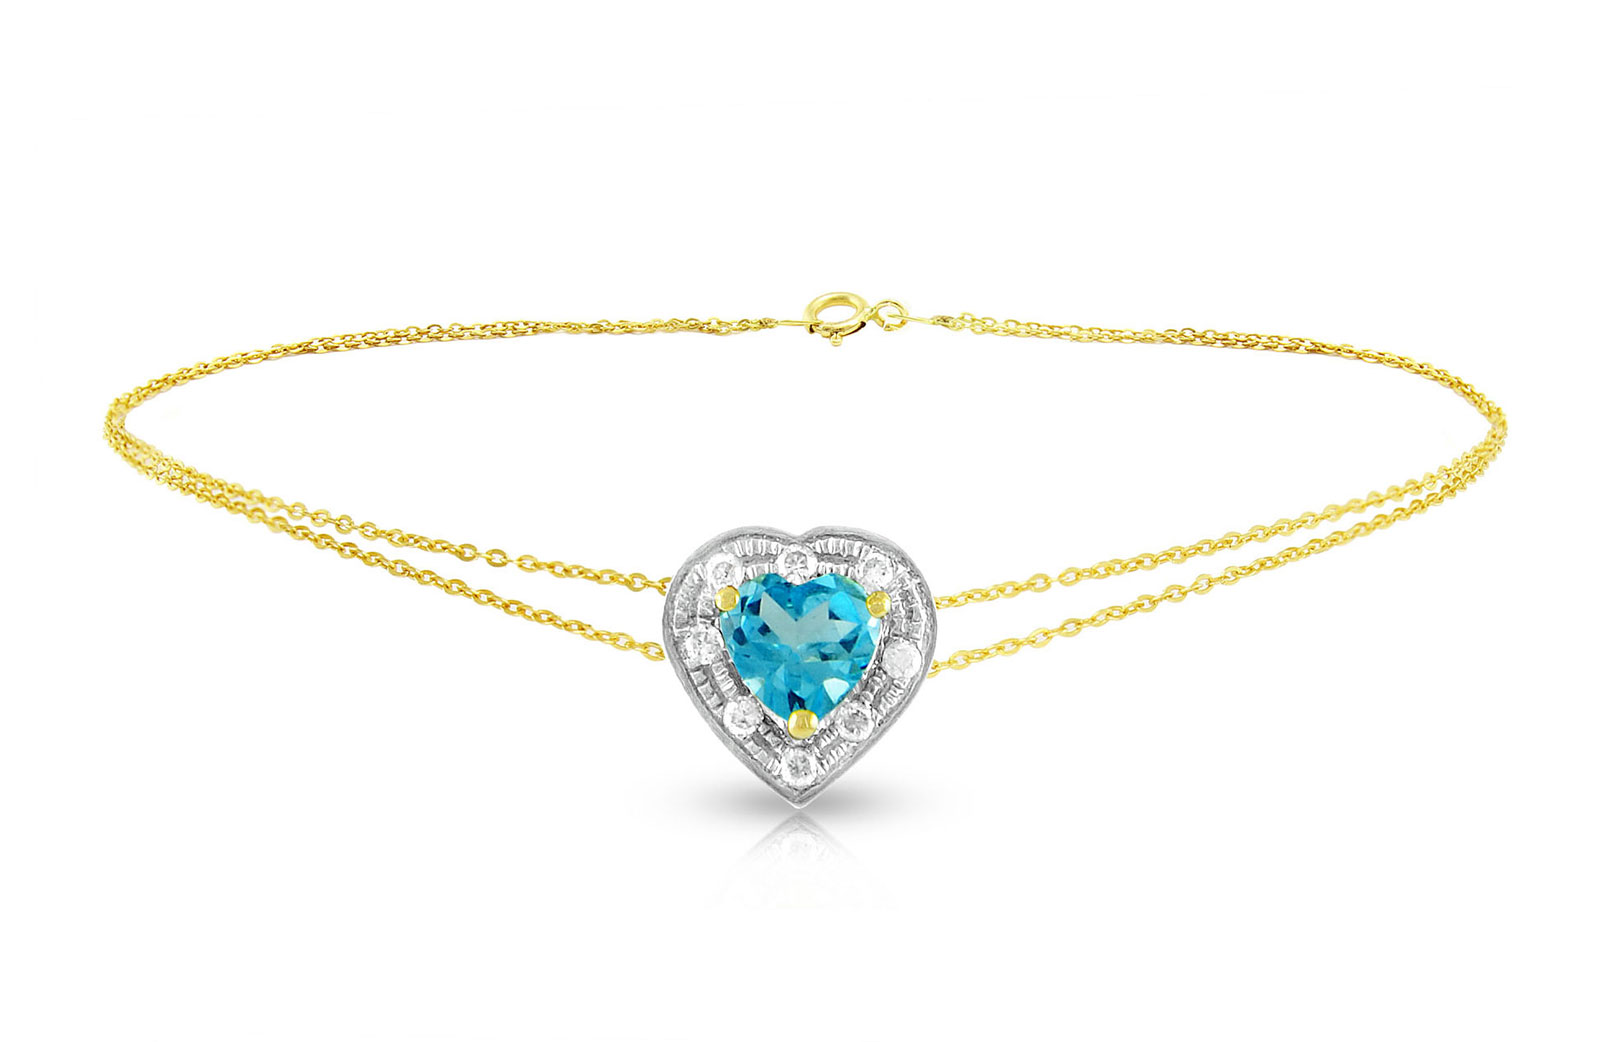 Vera Perla 18K Solid Gold and 0.08Cts Diamonds and 5mm Genuine Swiss Blue Topaz Heart Bracelet